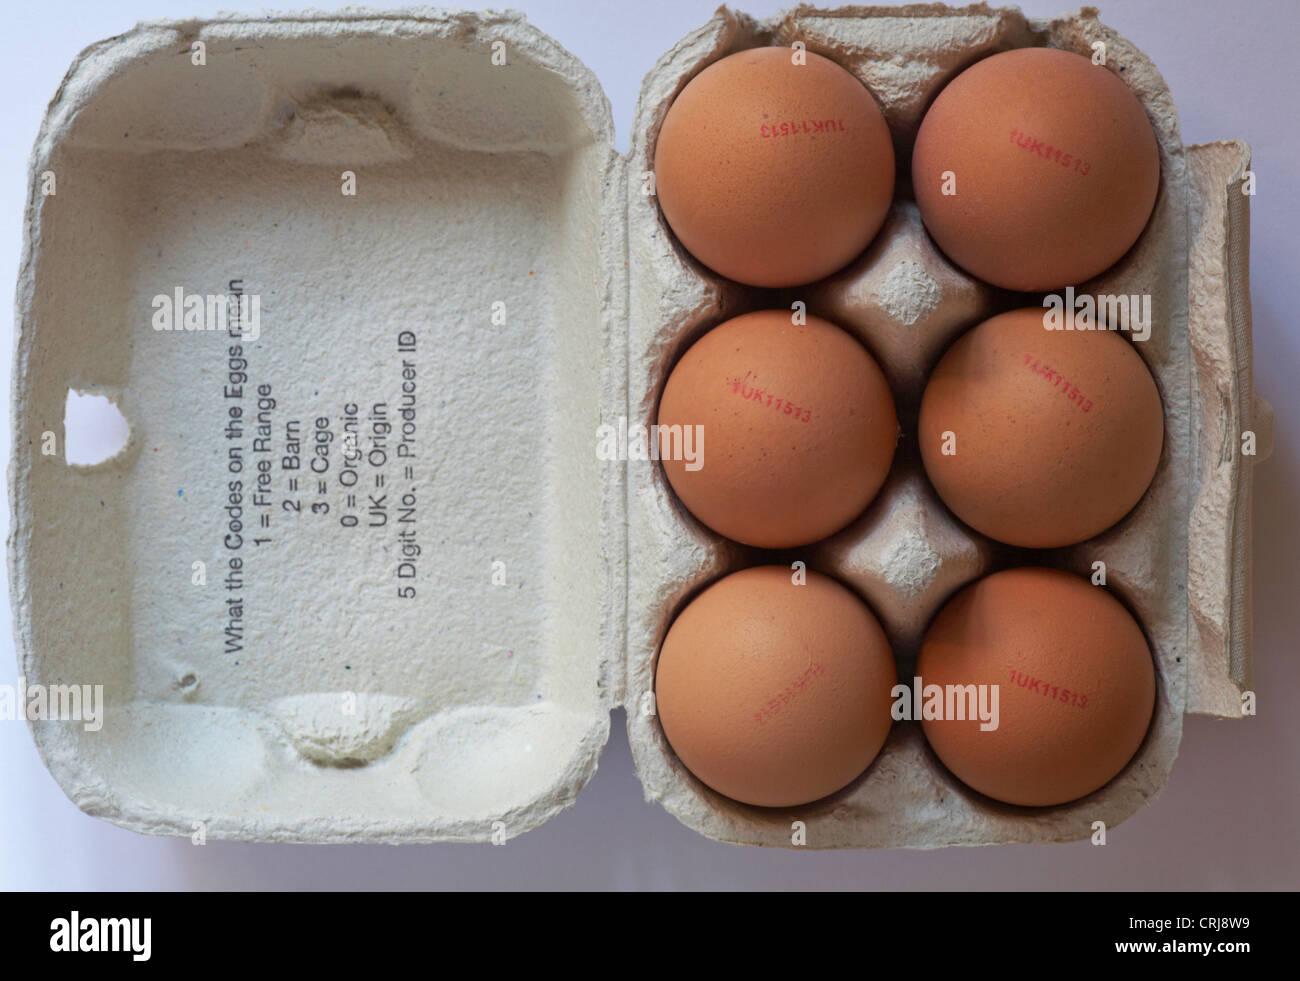 open egg carton of Very Large free range eggs from Pondhead Poultry Farm eggs with explanation of codes on eggs - Stock Image